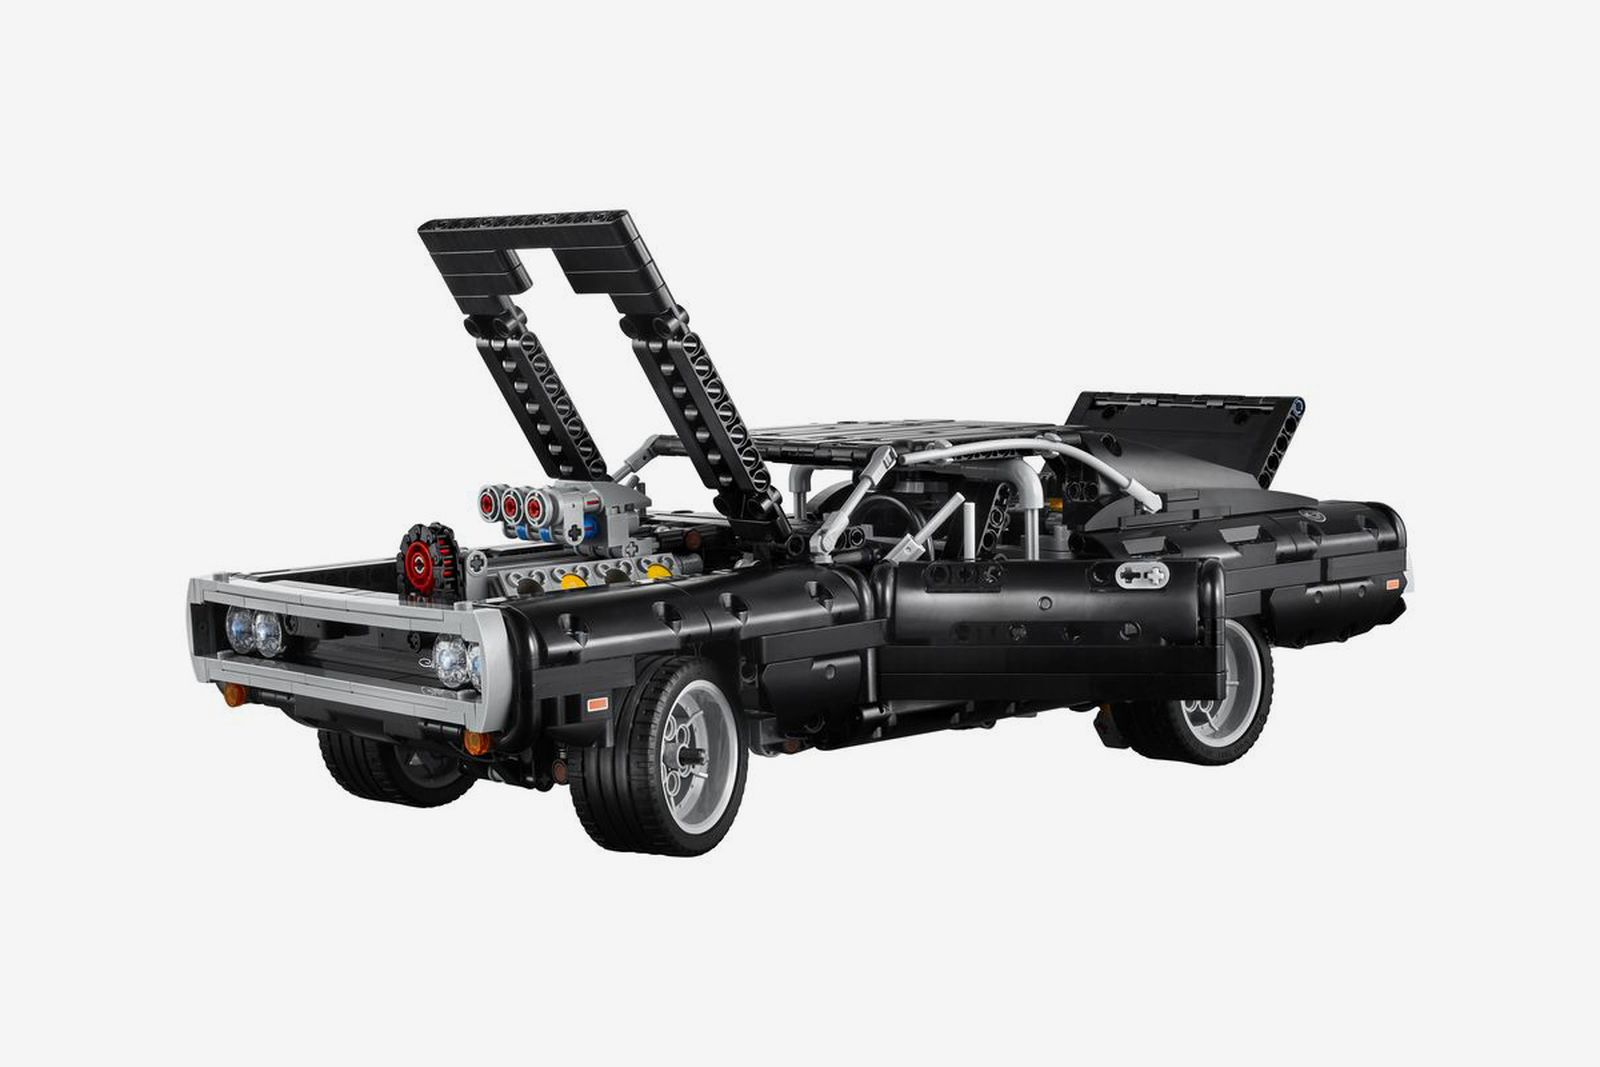 lego-fast-and-furious-dodge-charger-09